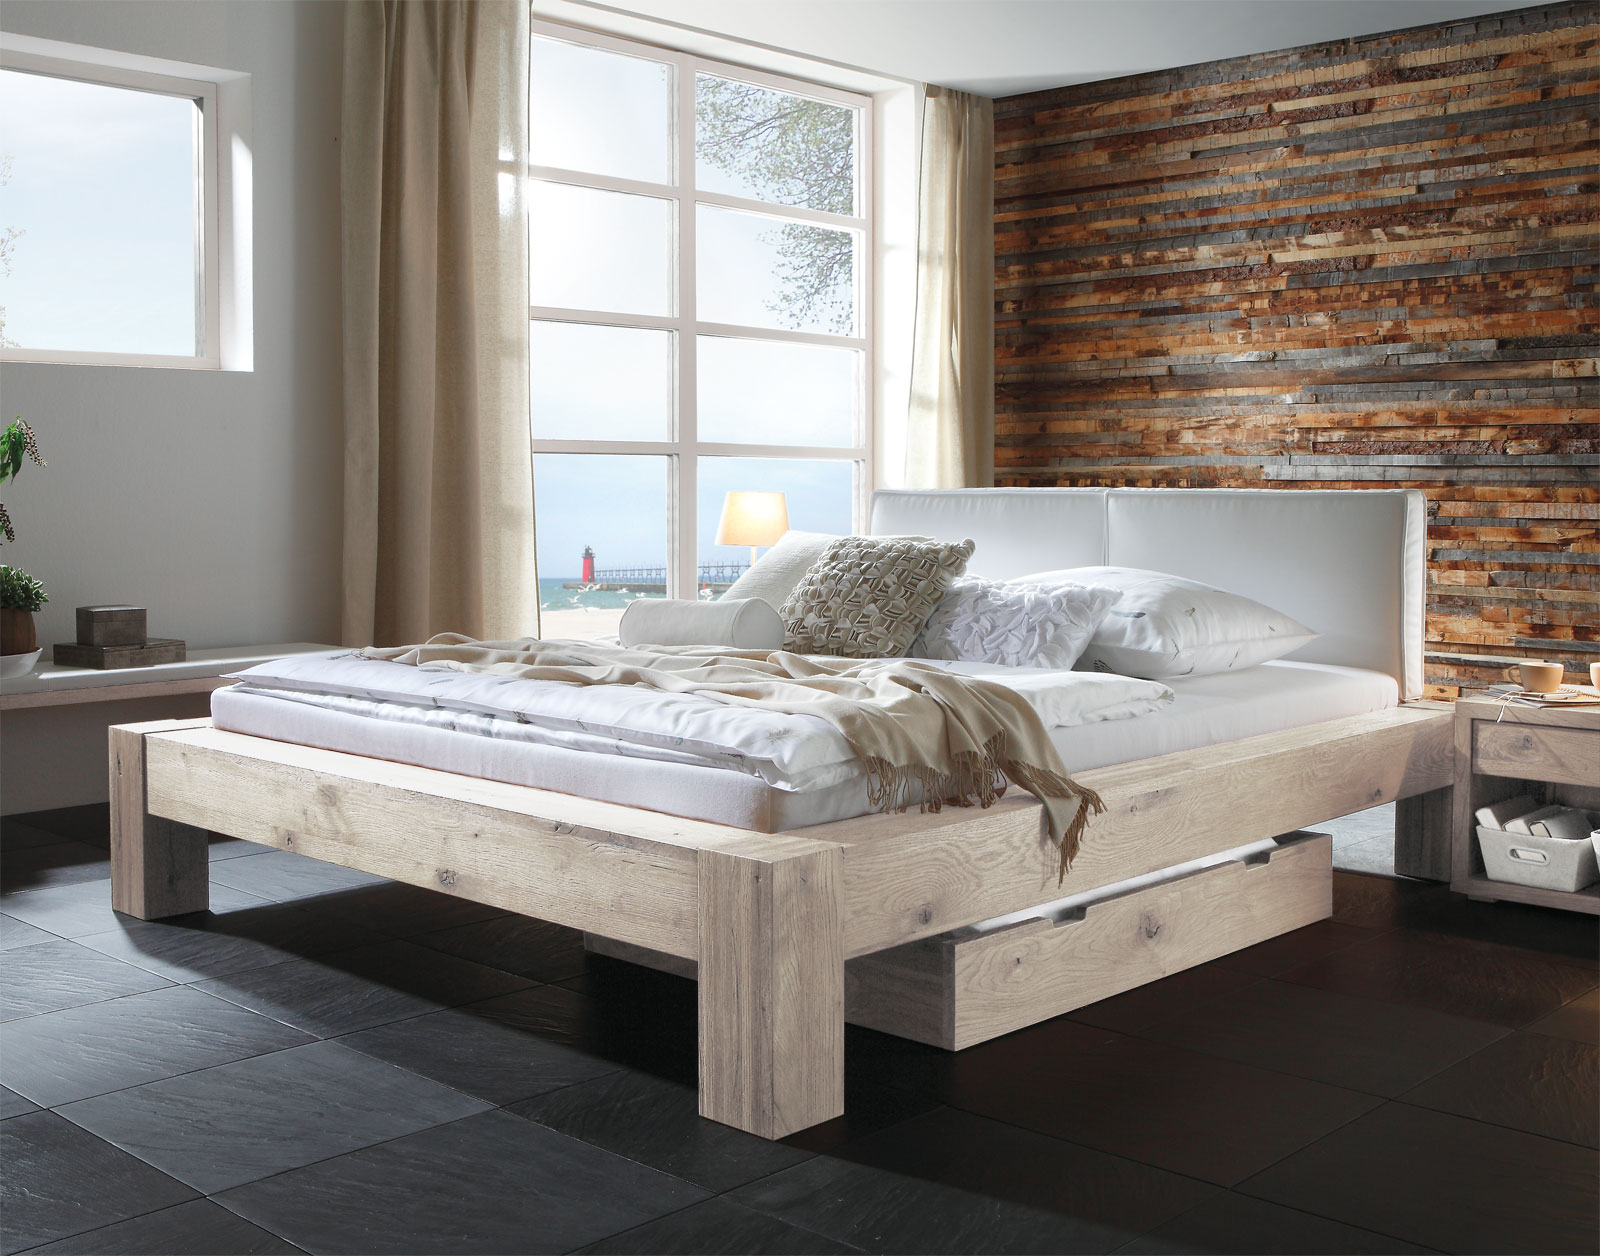 bett massivholz weis lasiert das beste aus wohndesign. Black Bedroom Furniture Sets. Home Design Ideas